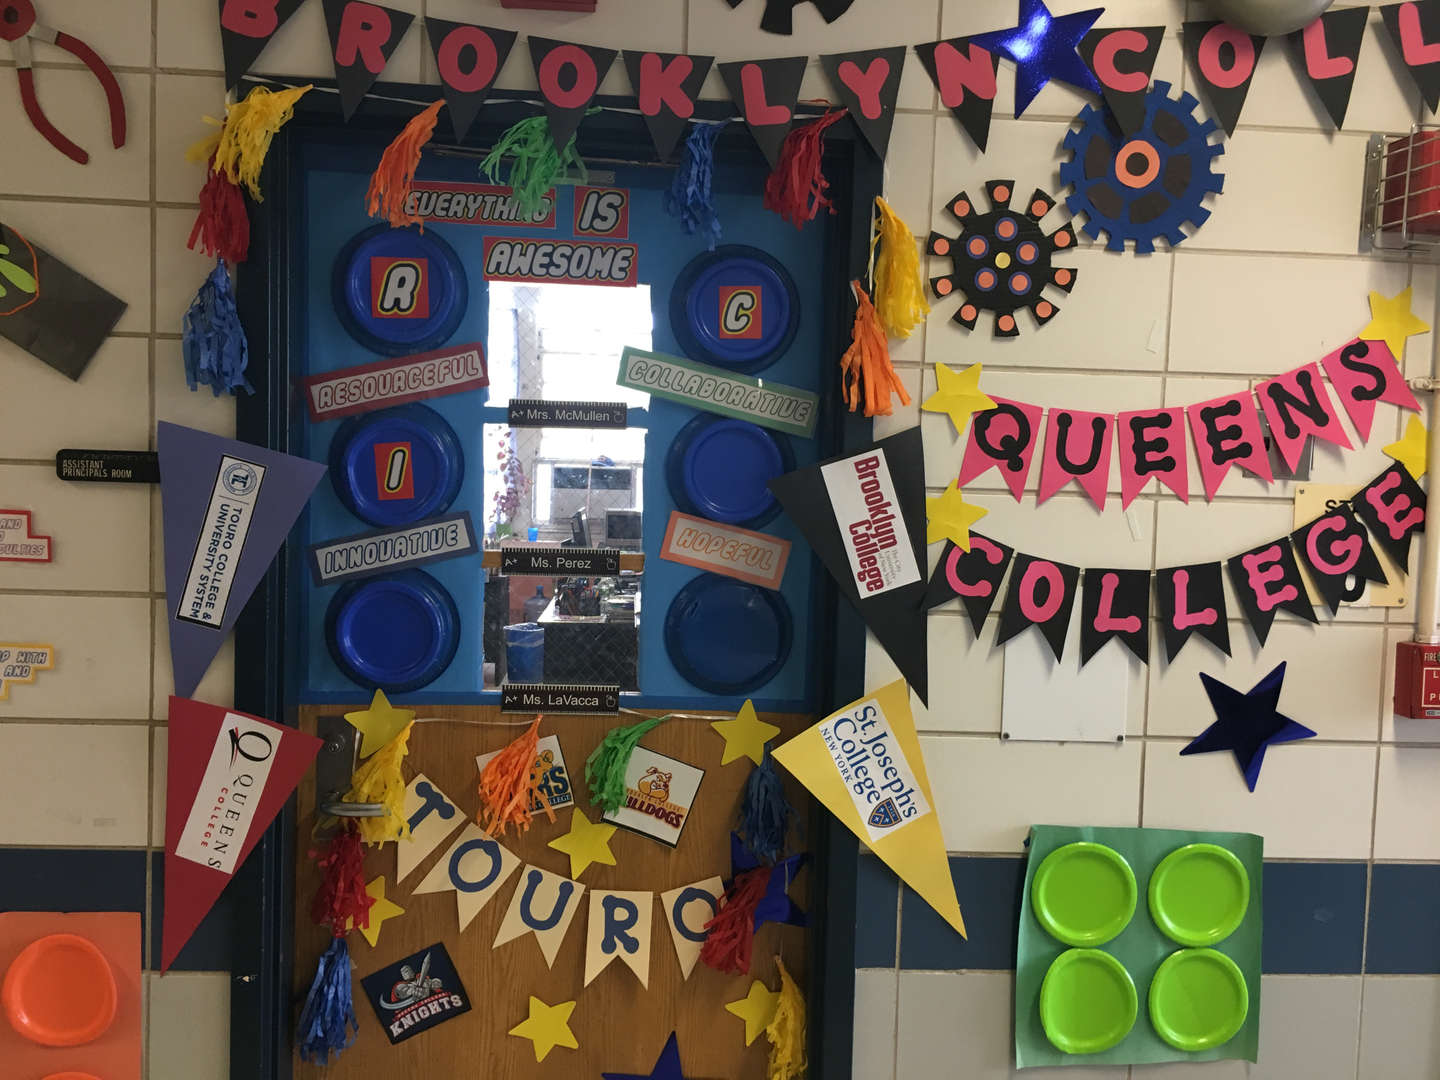 Colorful paper flags and plats decorating a door and wall